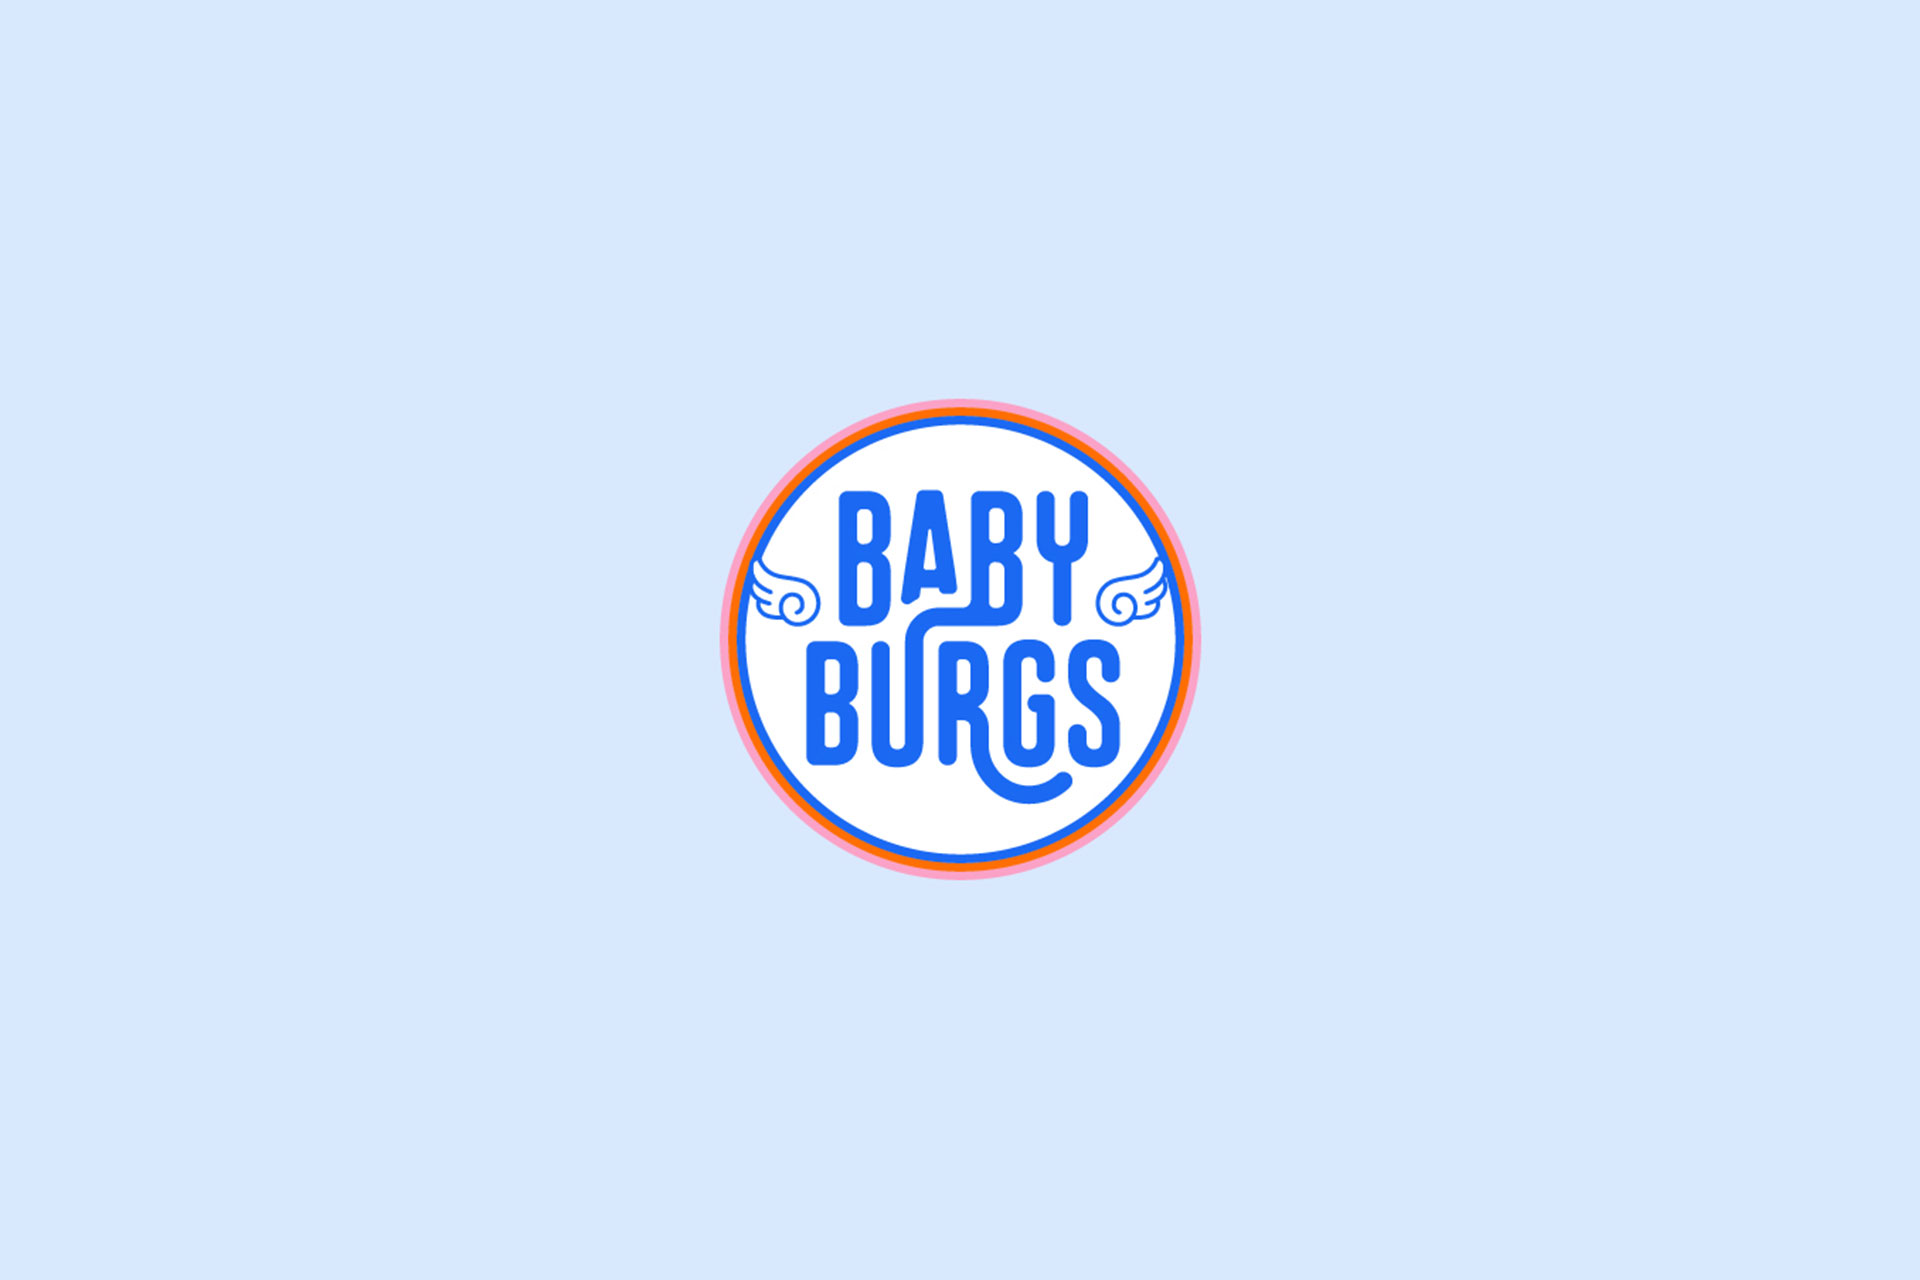 Babyburgs restaurant branding by Z Creative Studio Branding & Graphic Design Melbourne